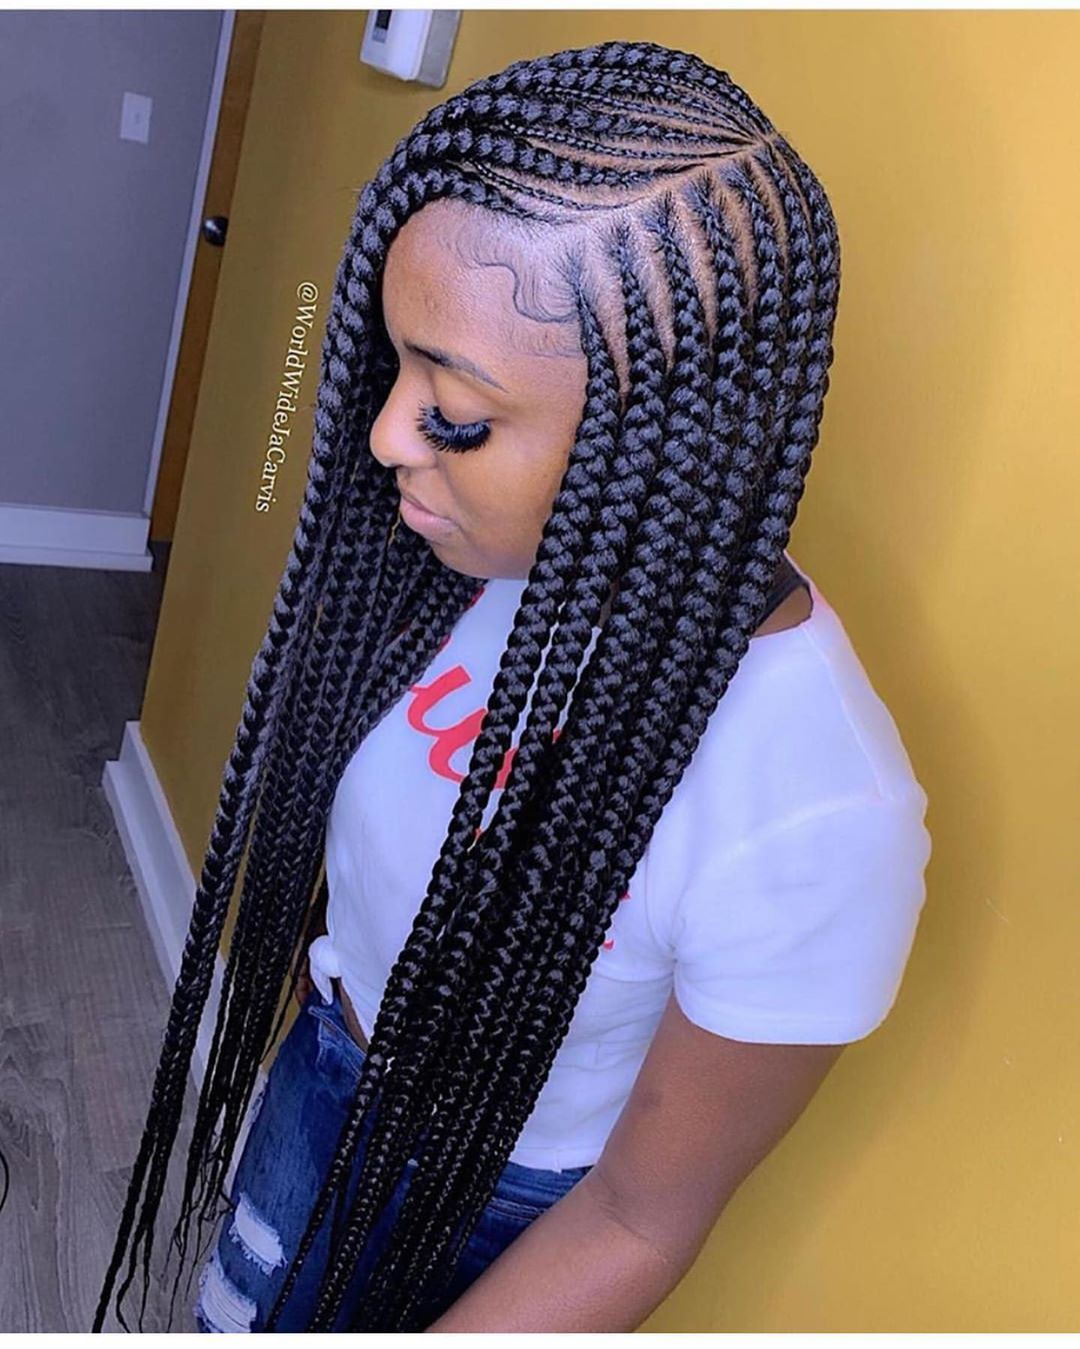 African Braids For Black Women African American Hairstyles Box Braids Cornrows Braids B Braids For Black Women New Braided Hairstyles Braids For Black Hair